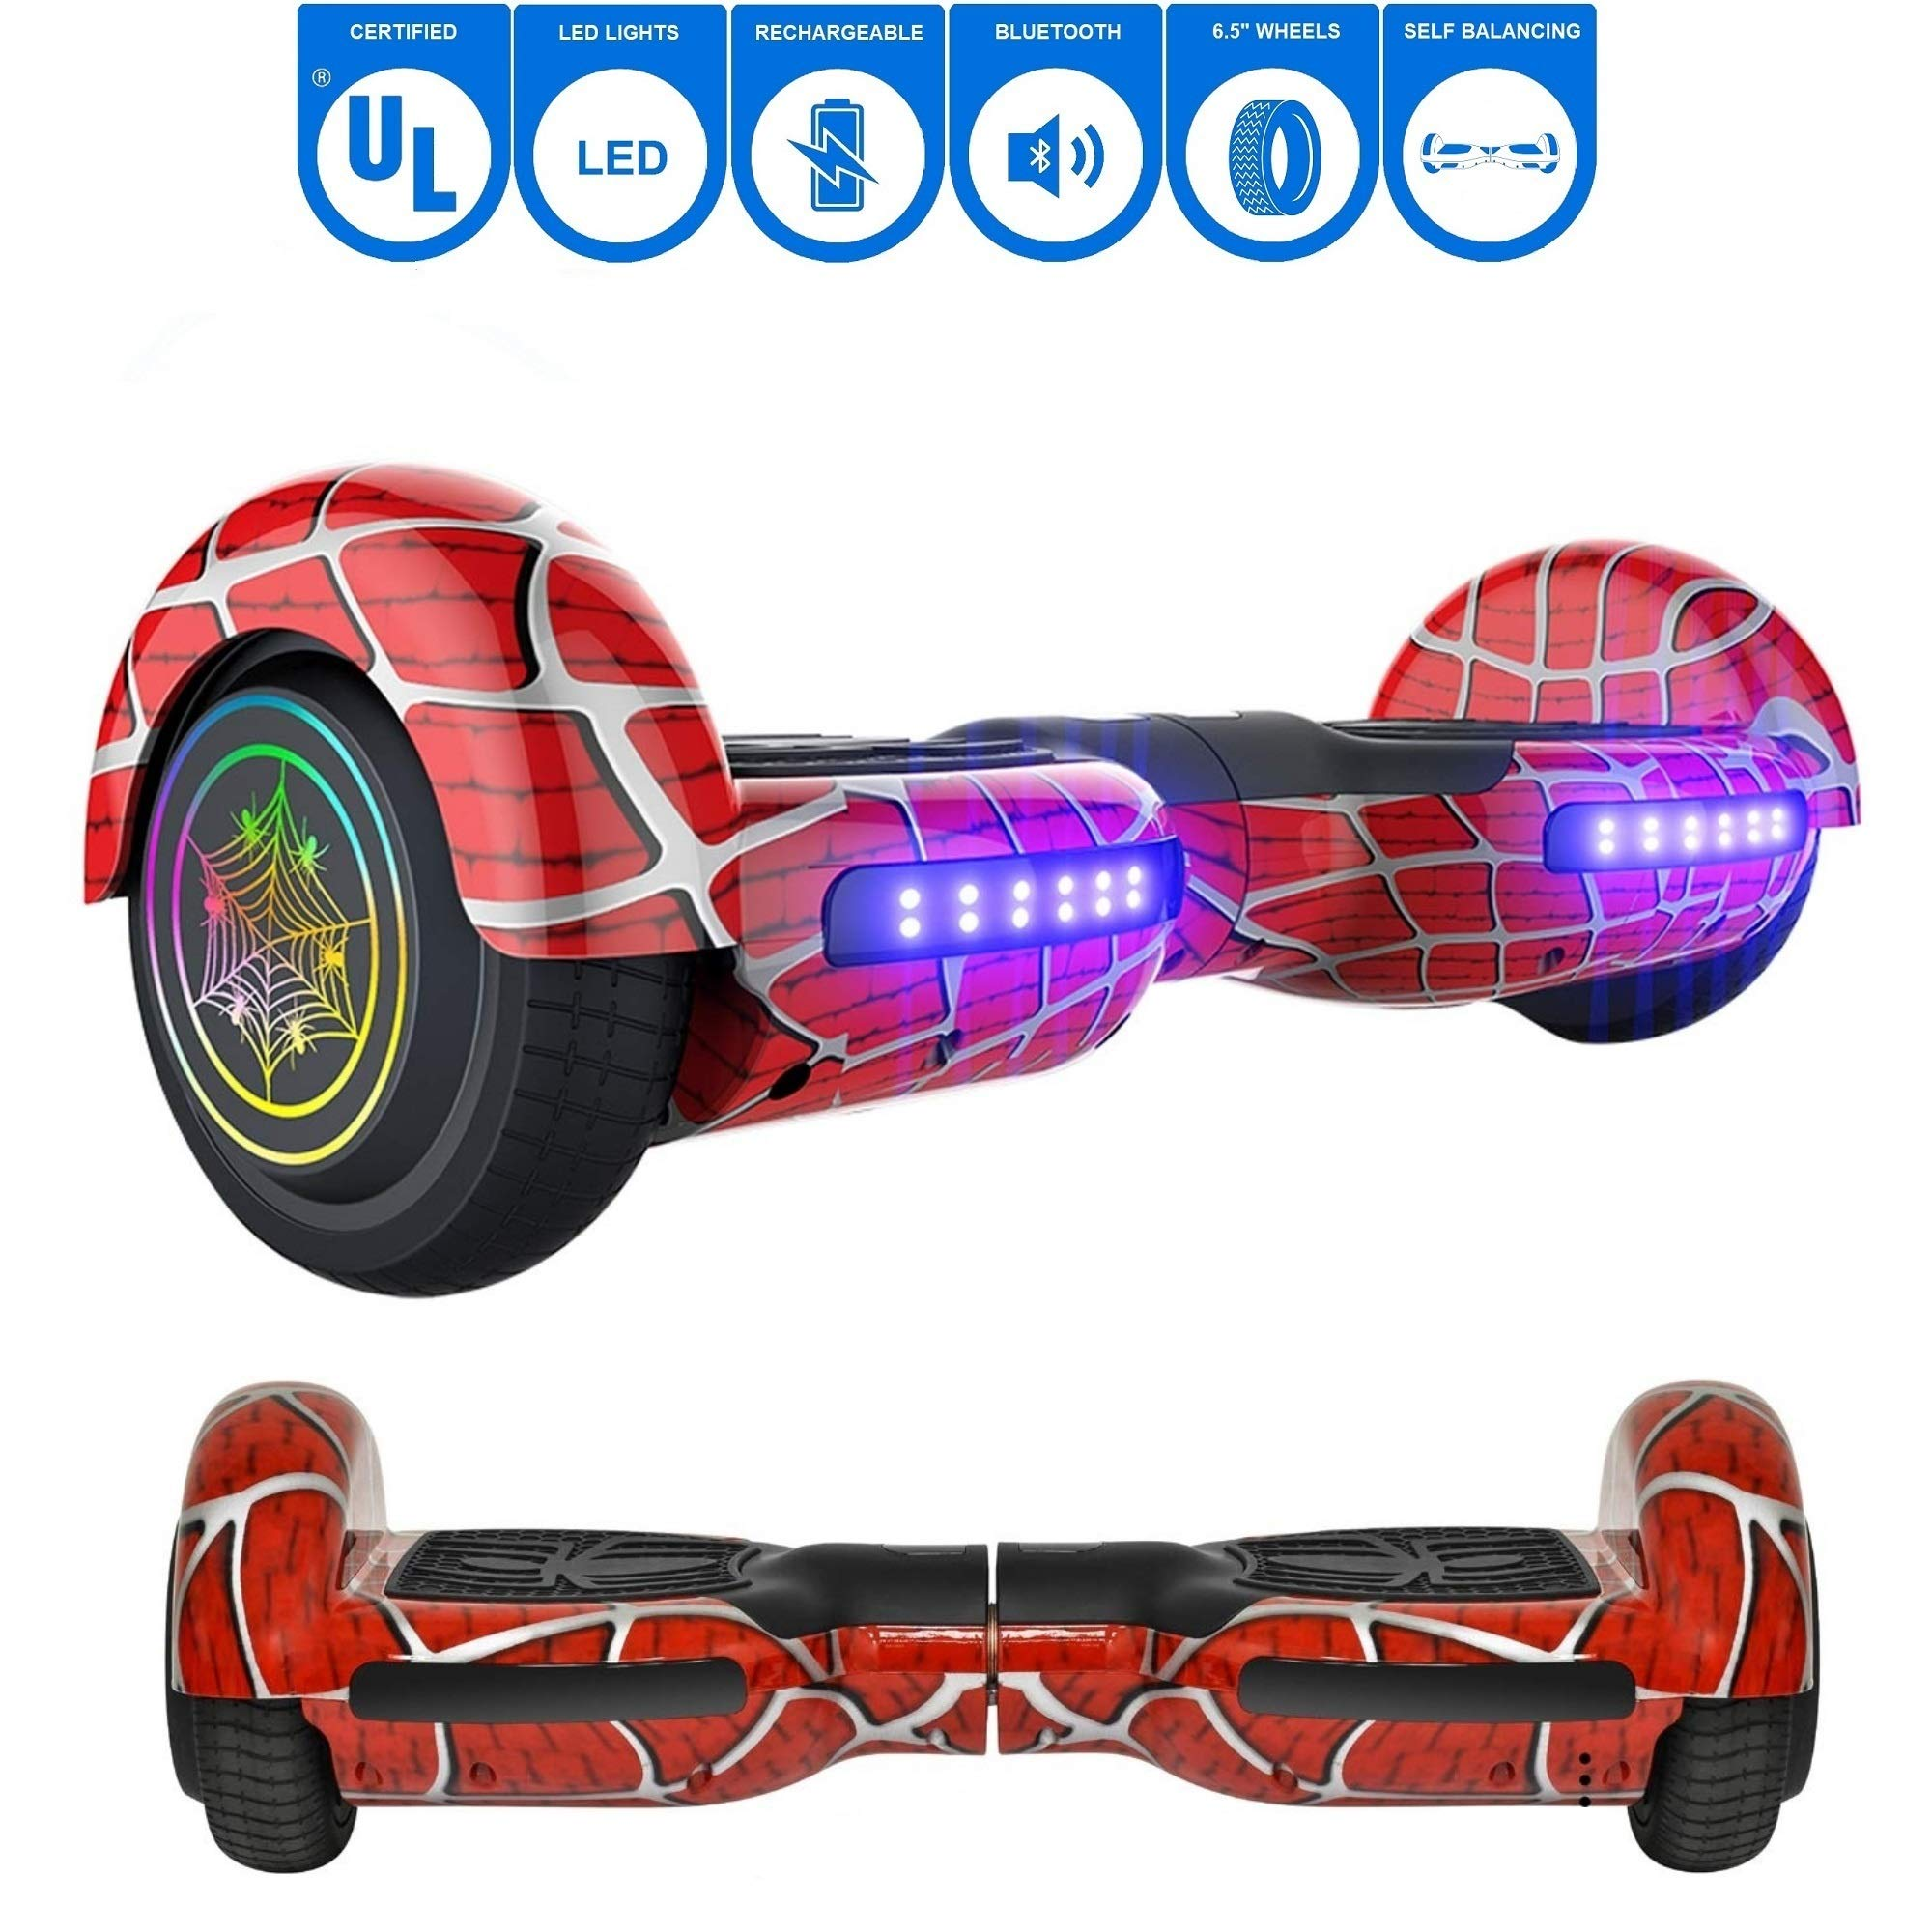 NHT 6.5'' inch Aurora Hoverboard Self Balancing Scooter with Colorful LED Wheels and Lights - UL2272 Certified Carbon Fiber/Spider/Built-in Bluetooth Speaker Available (Spider Red)